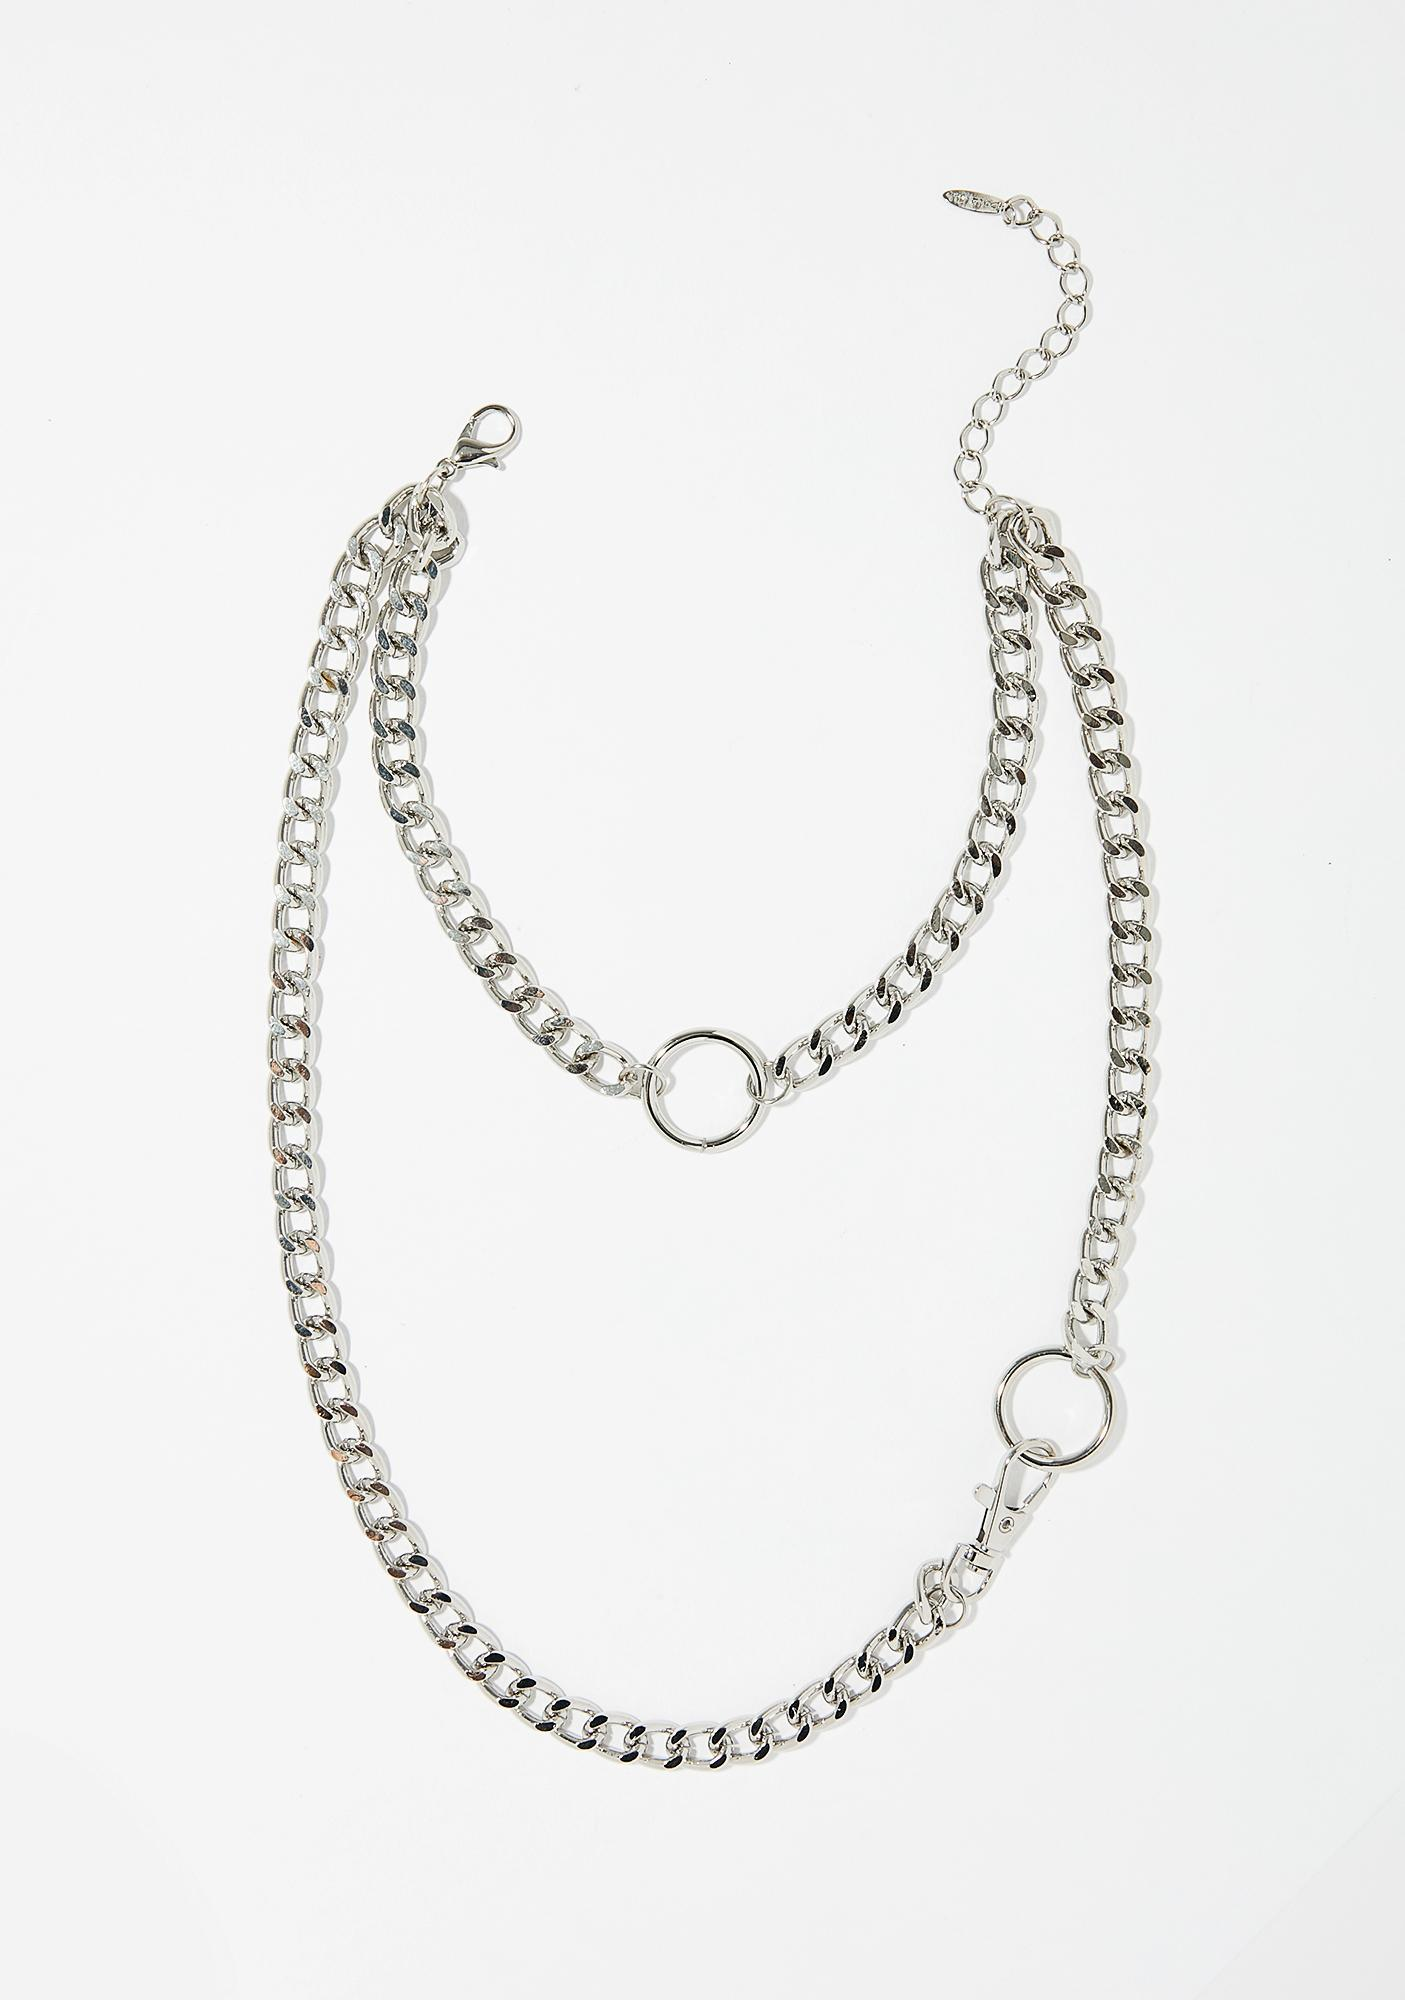 Chain Reaction Layered Necklace